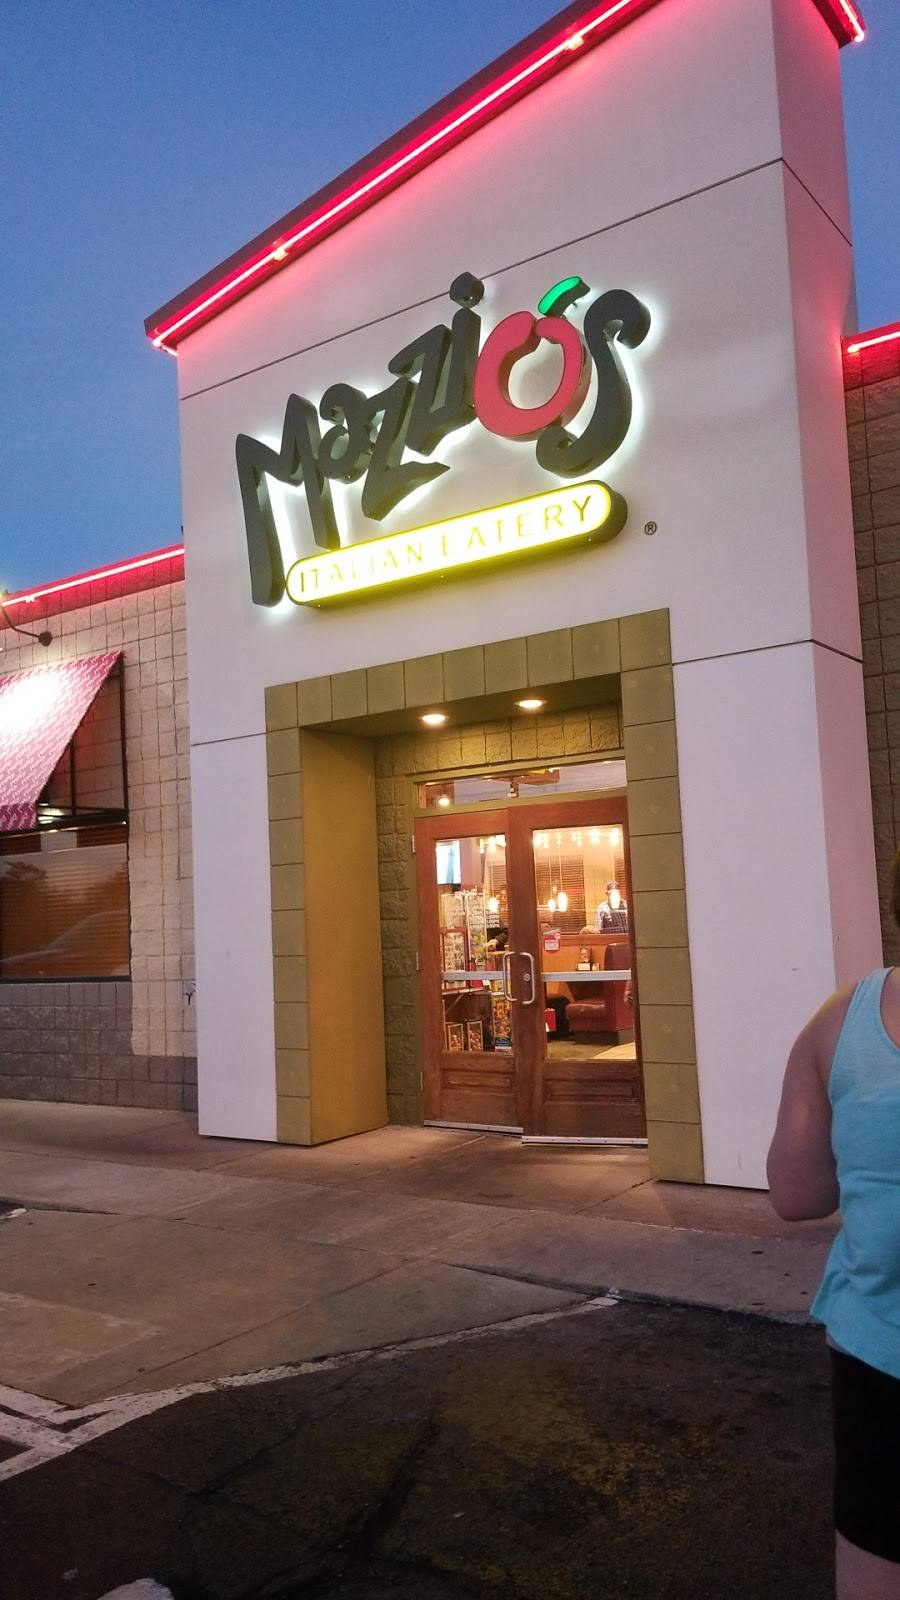 Mazzios Italian Eatery   meal delivery   4099 OK-97, Sand Springs, OK 74063, USA   9186644444 OR +1 918-664-4444